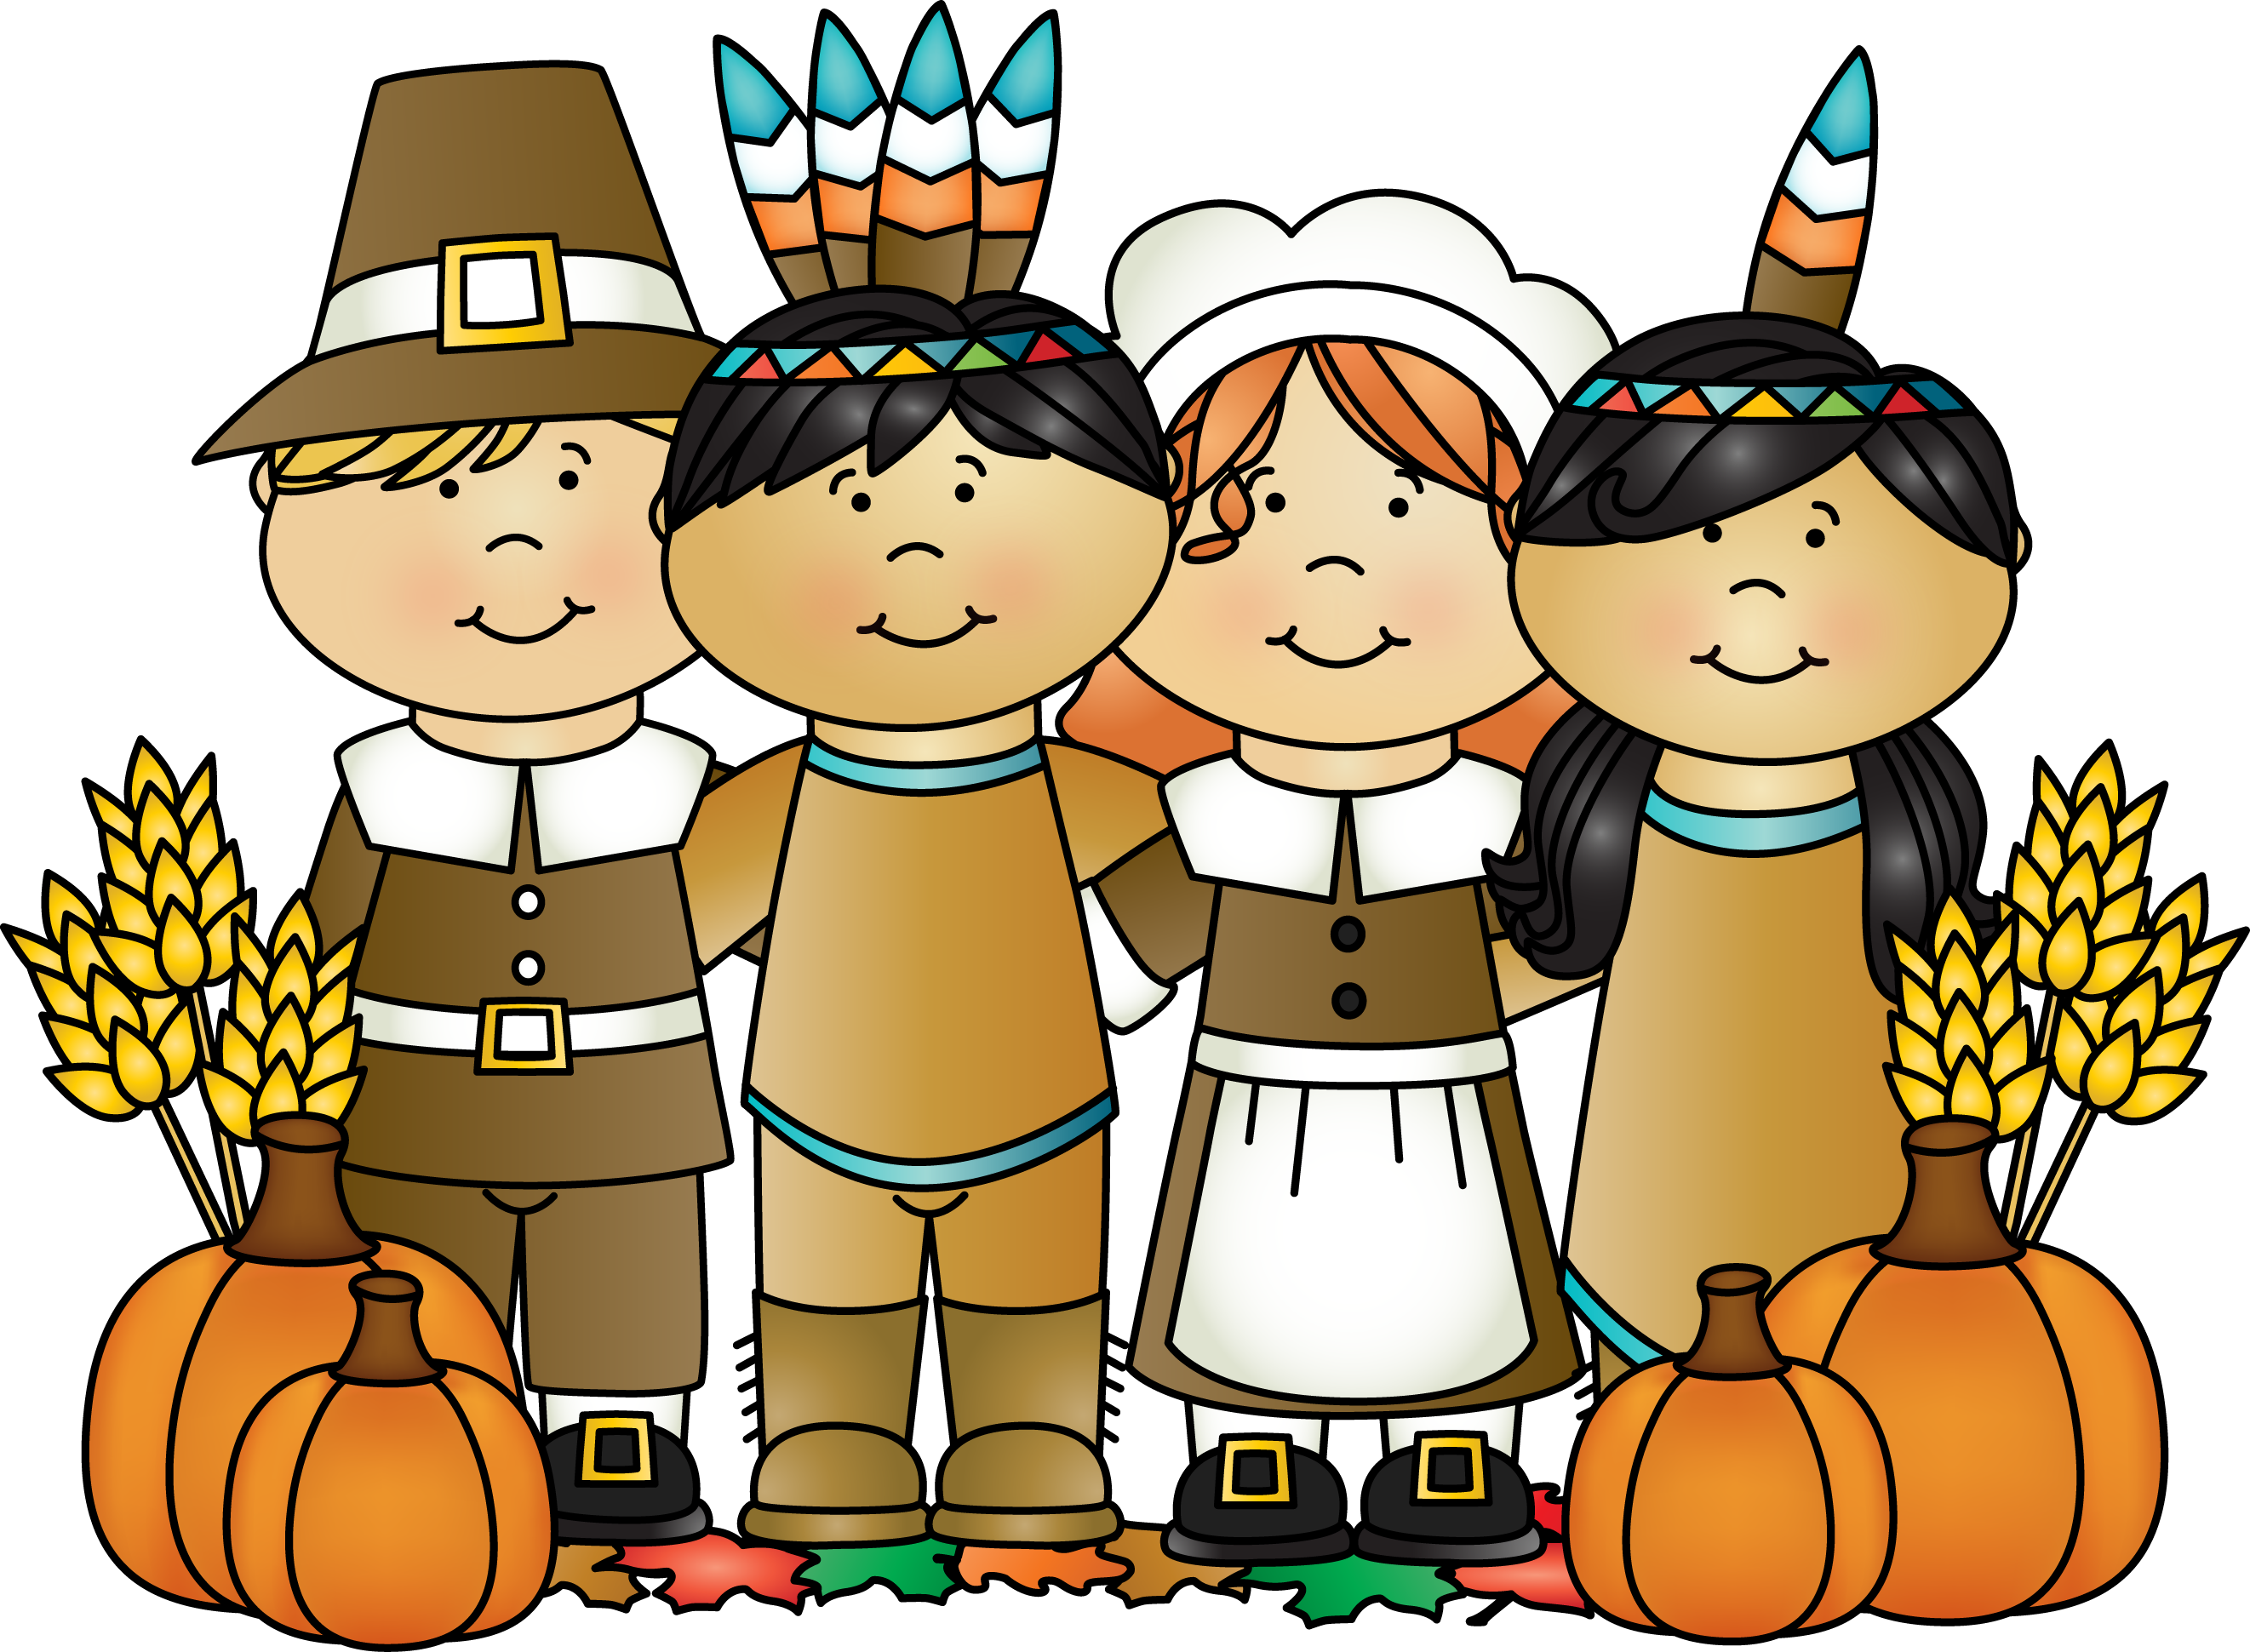 One of the Indians who was called Squanto came to help the Pilgrims for a while, and he showed them how to plant corn, pumpkins, wheat and barley.